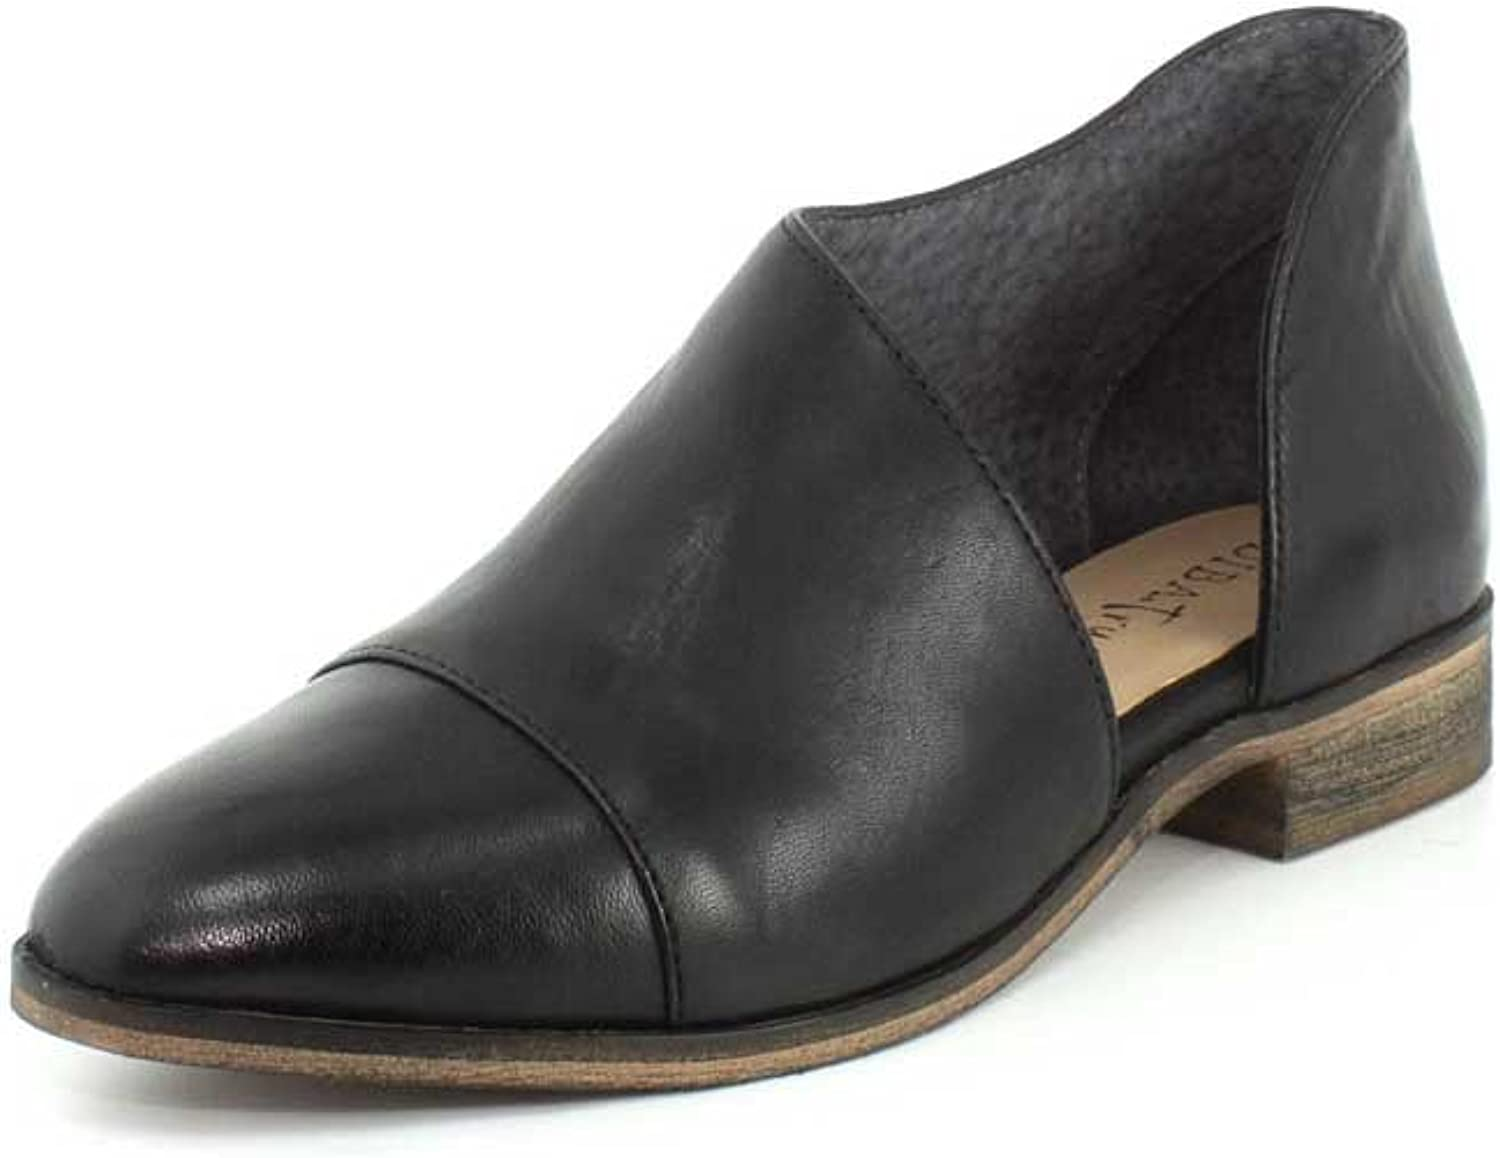 Diba True No Way Out Leather Slip On Loafer